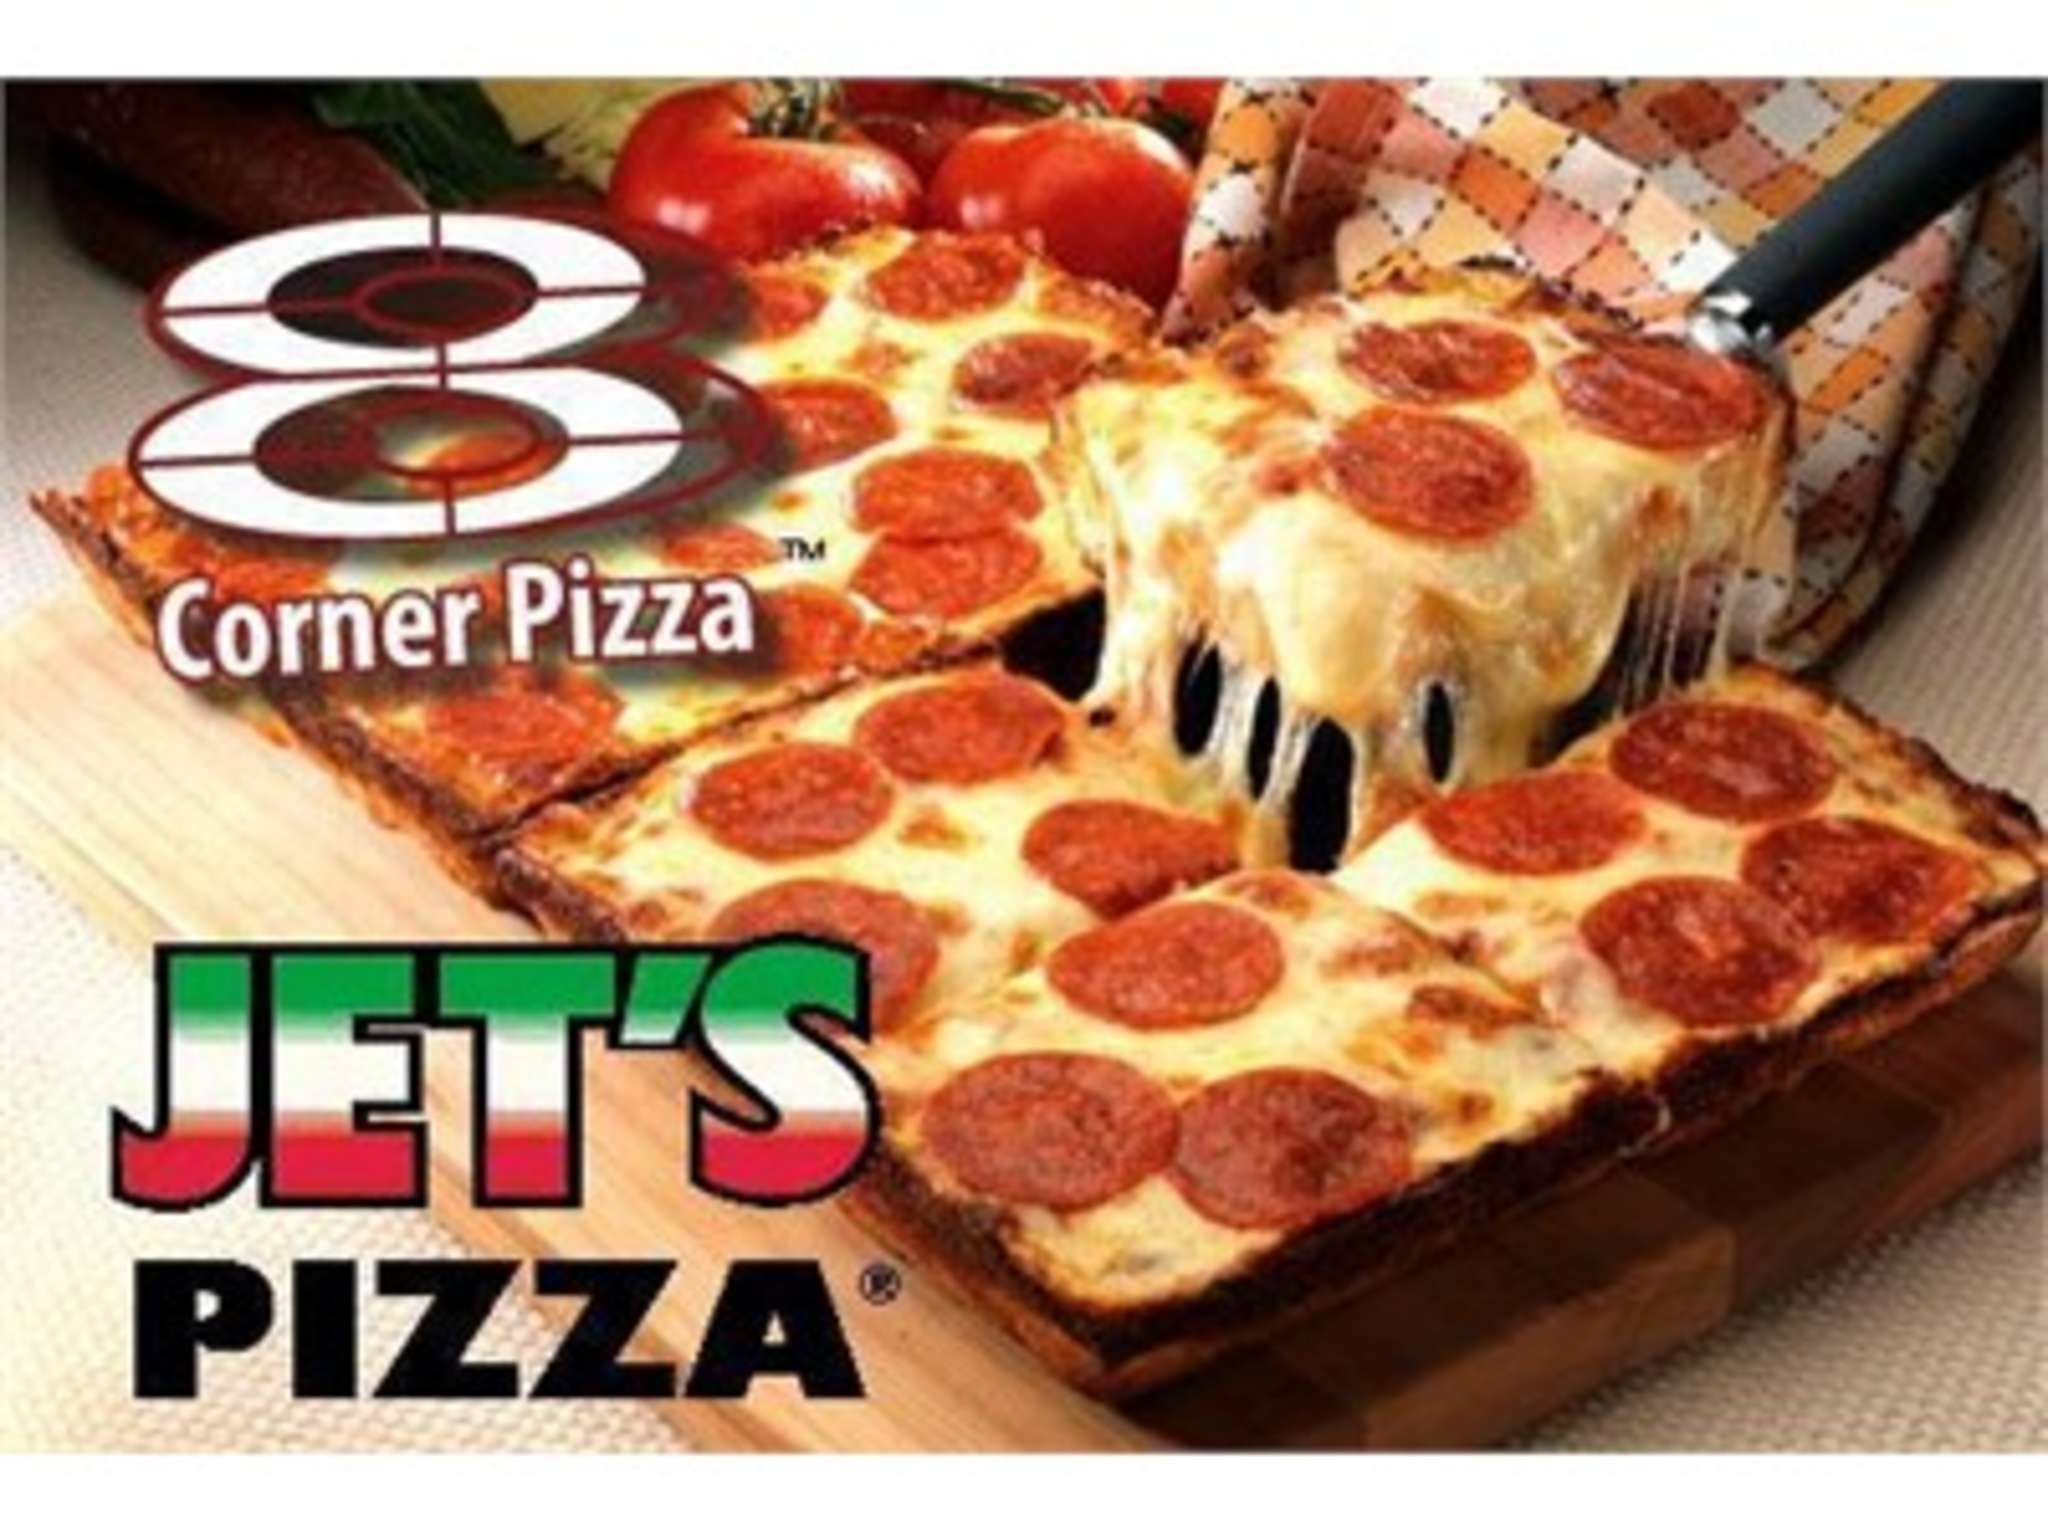 Jet's Pizza location